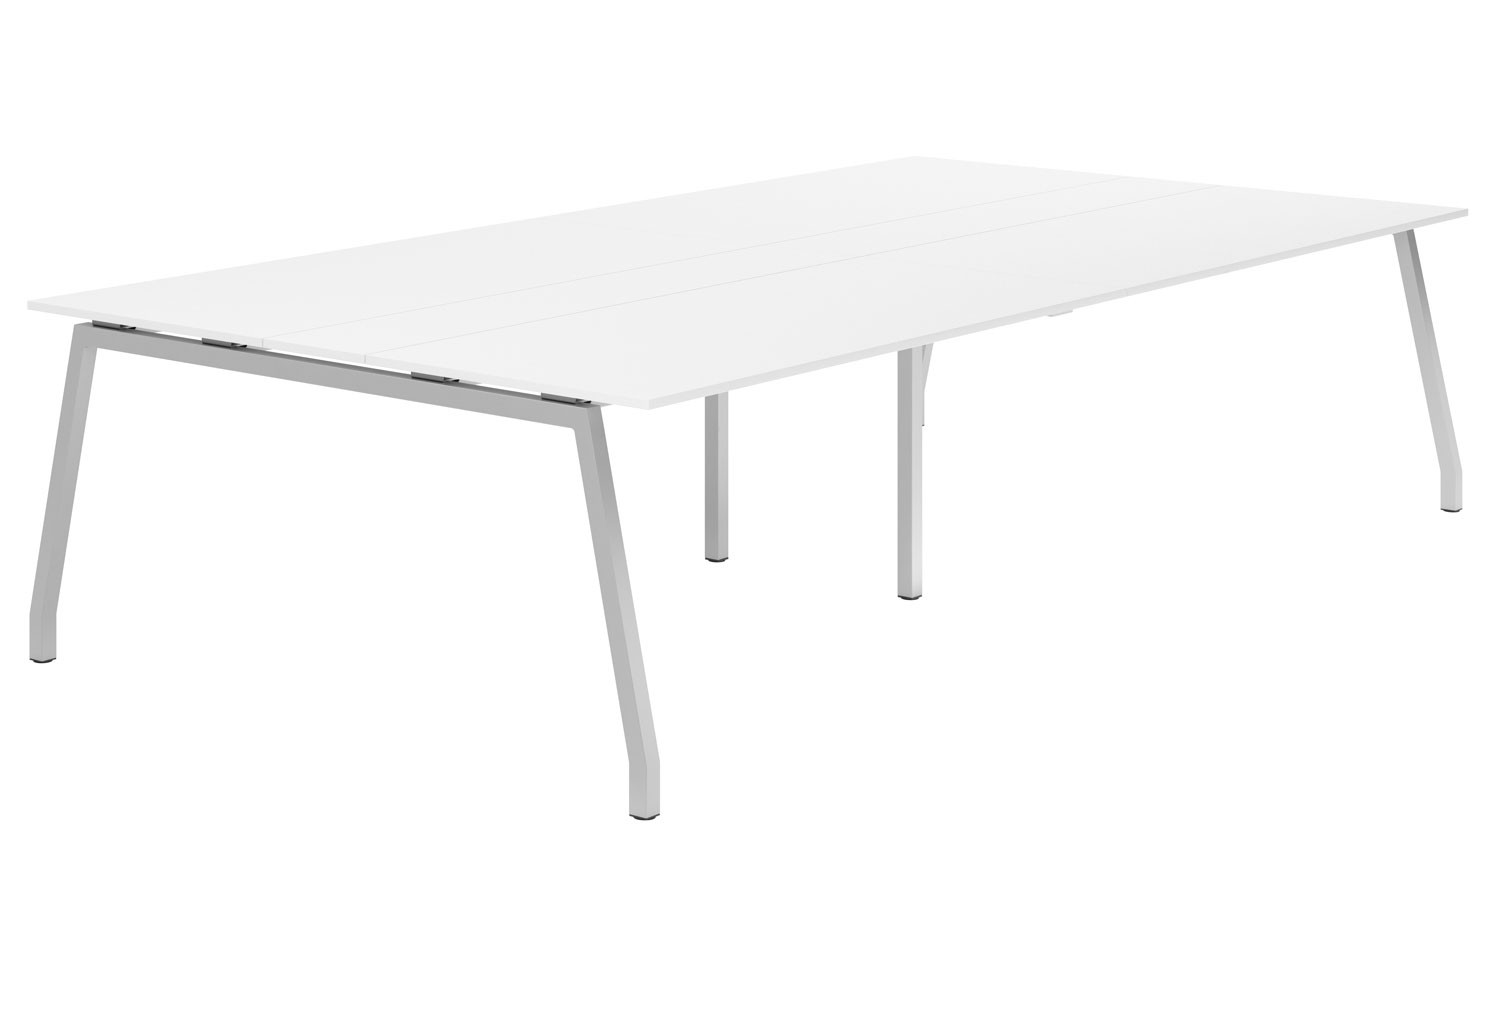 Campos A-Frame 10-12 Person Meeting Table (White)